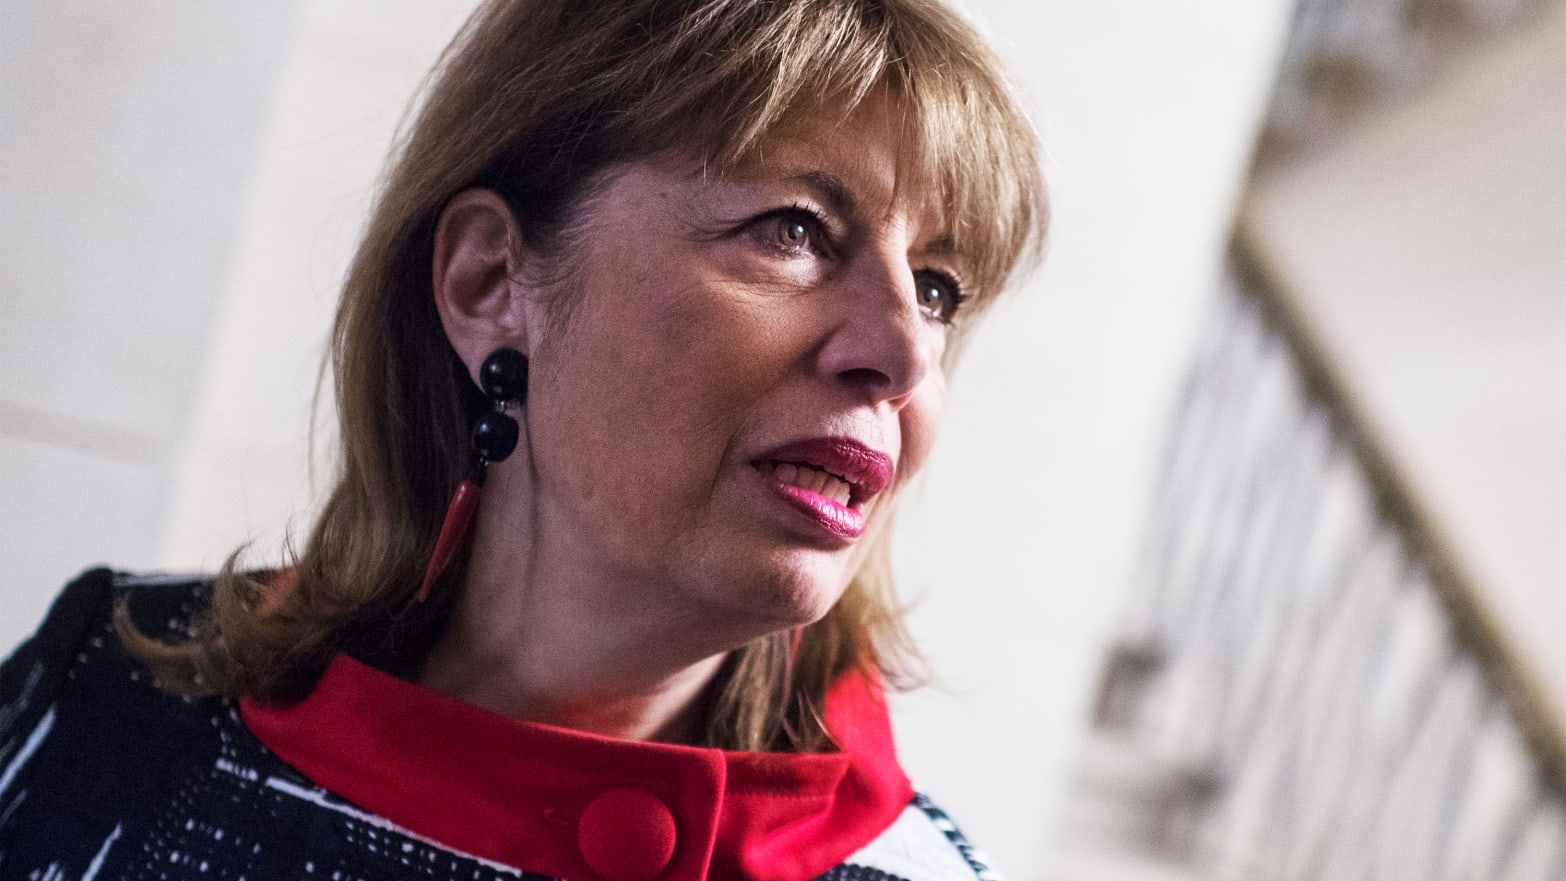 Rep. Jackie Speier Calls For Investigation of Trump Sexual Assault Allegations as Her Colleagues Shrug